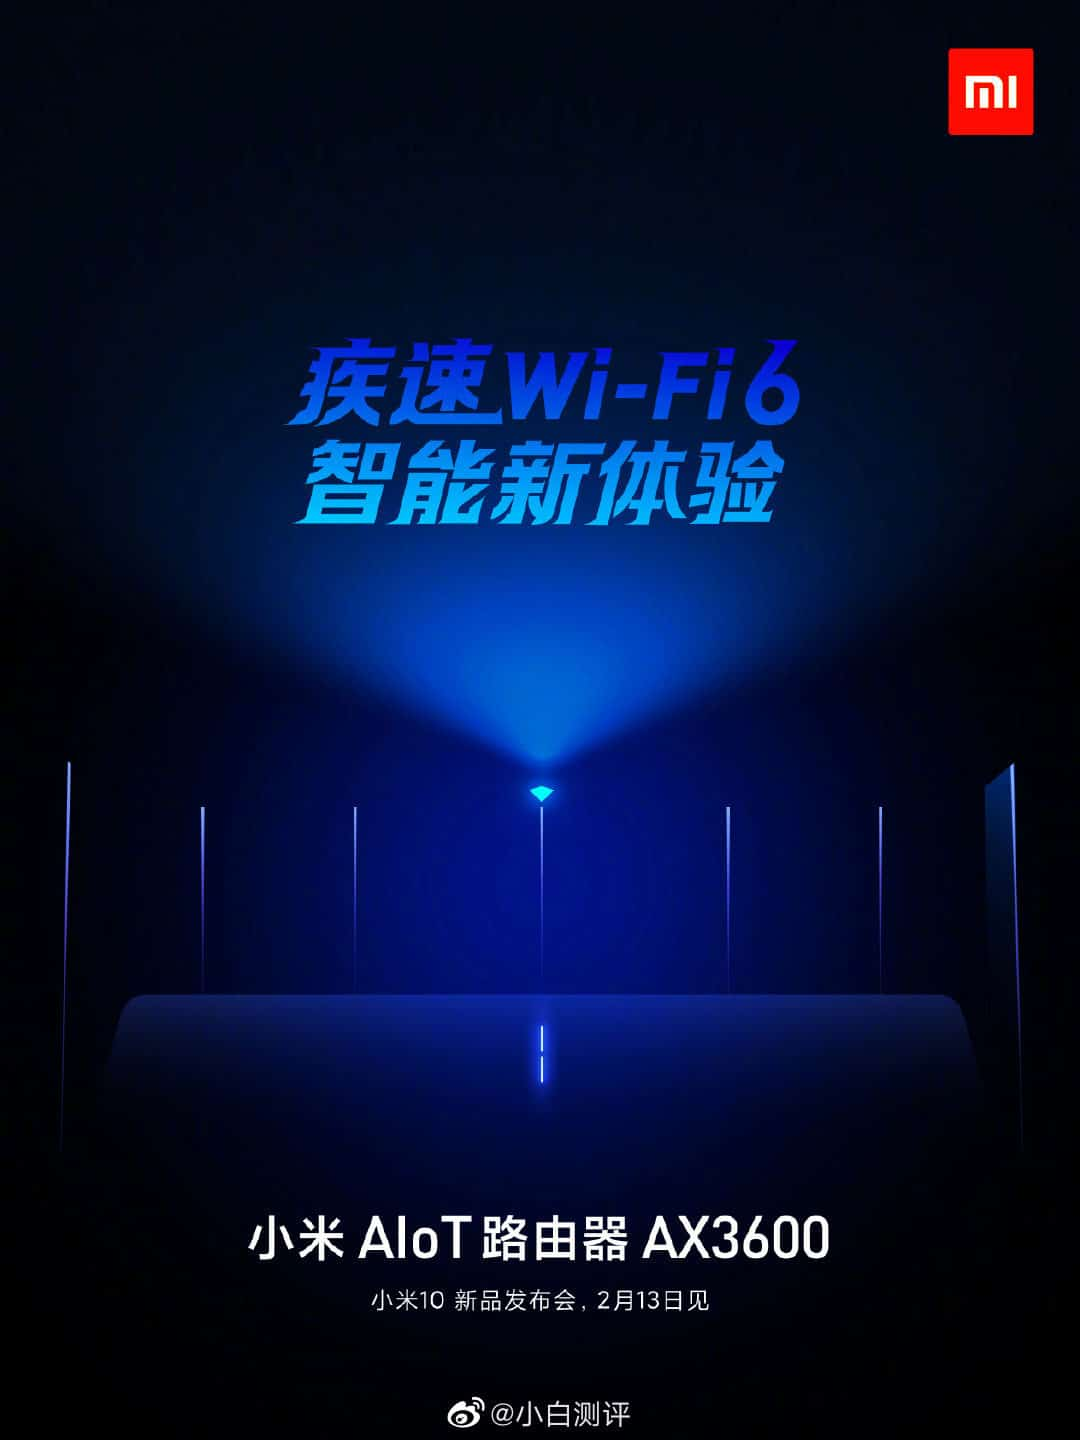 Xiaomi Wi-Fi 6 Router is coming